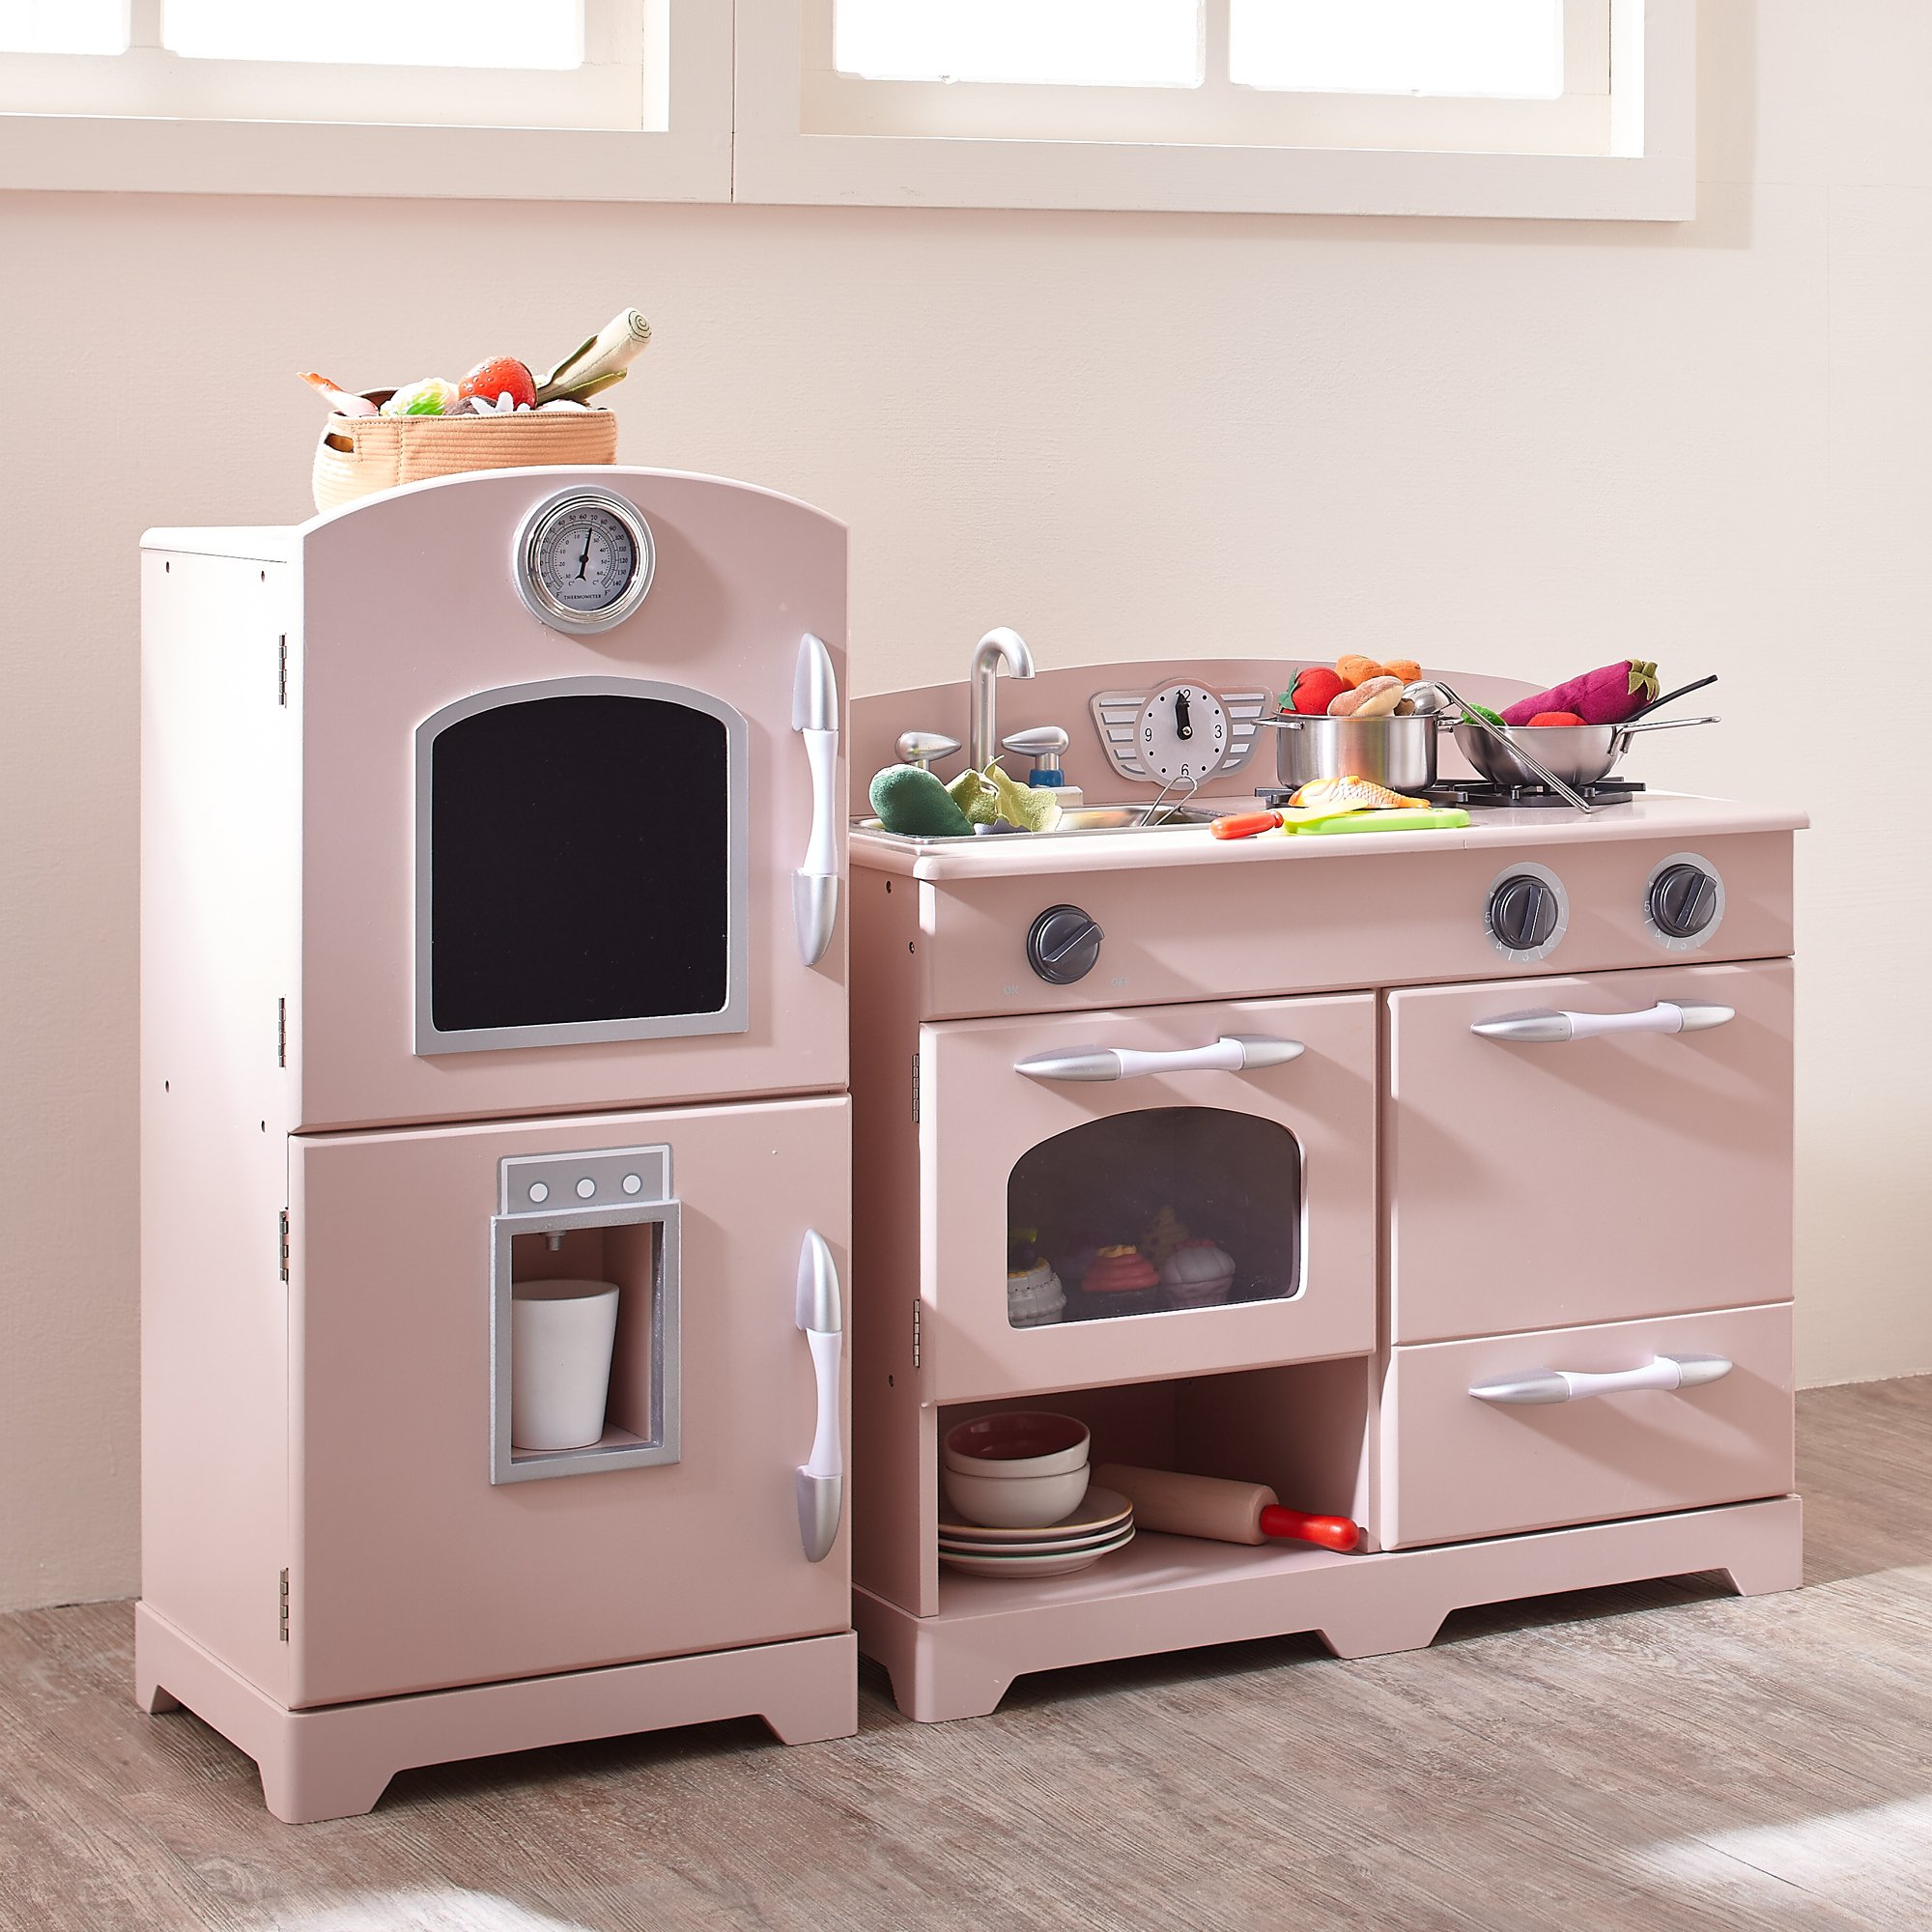 Teamson Kids - Retro Wooden Play Kitchen with Refrigerator, Freezer, Oven and Dishwasher - Pink (2 Pieces) by Teamson Kids (Image #2)